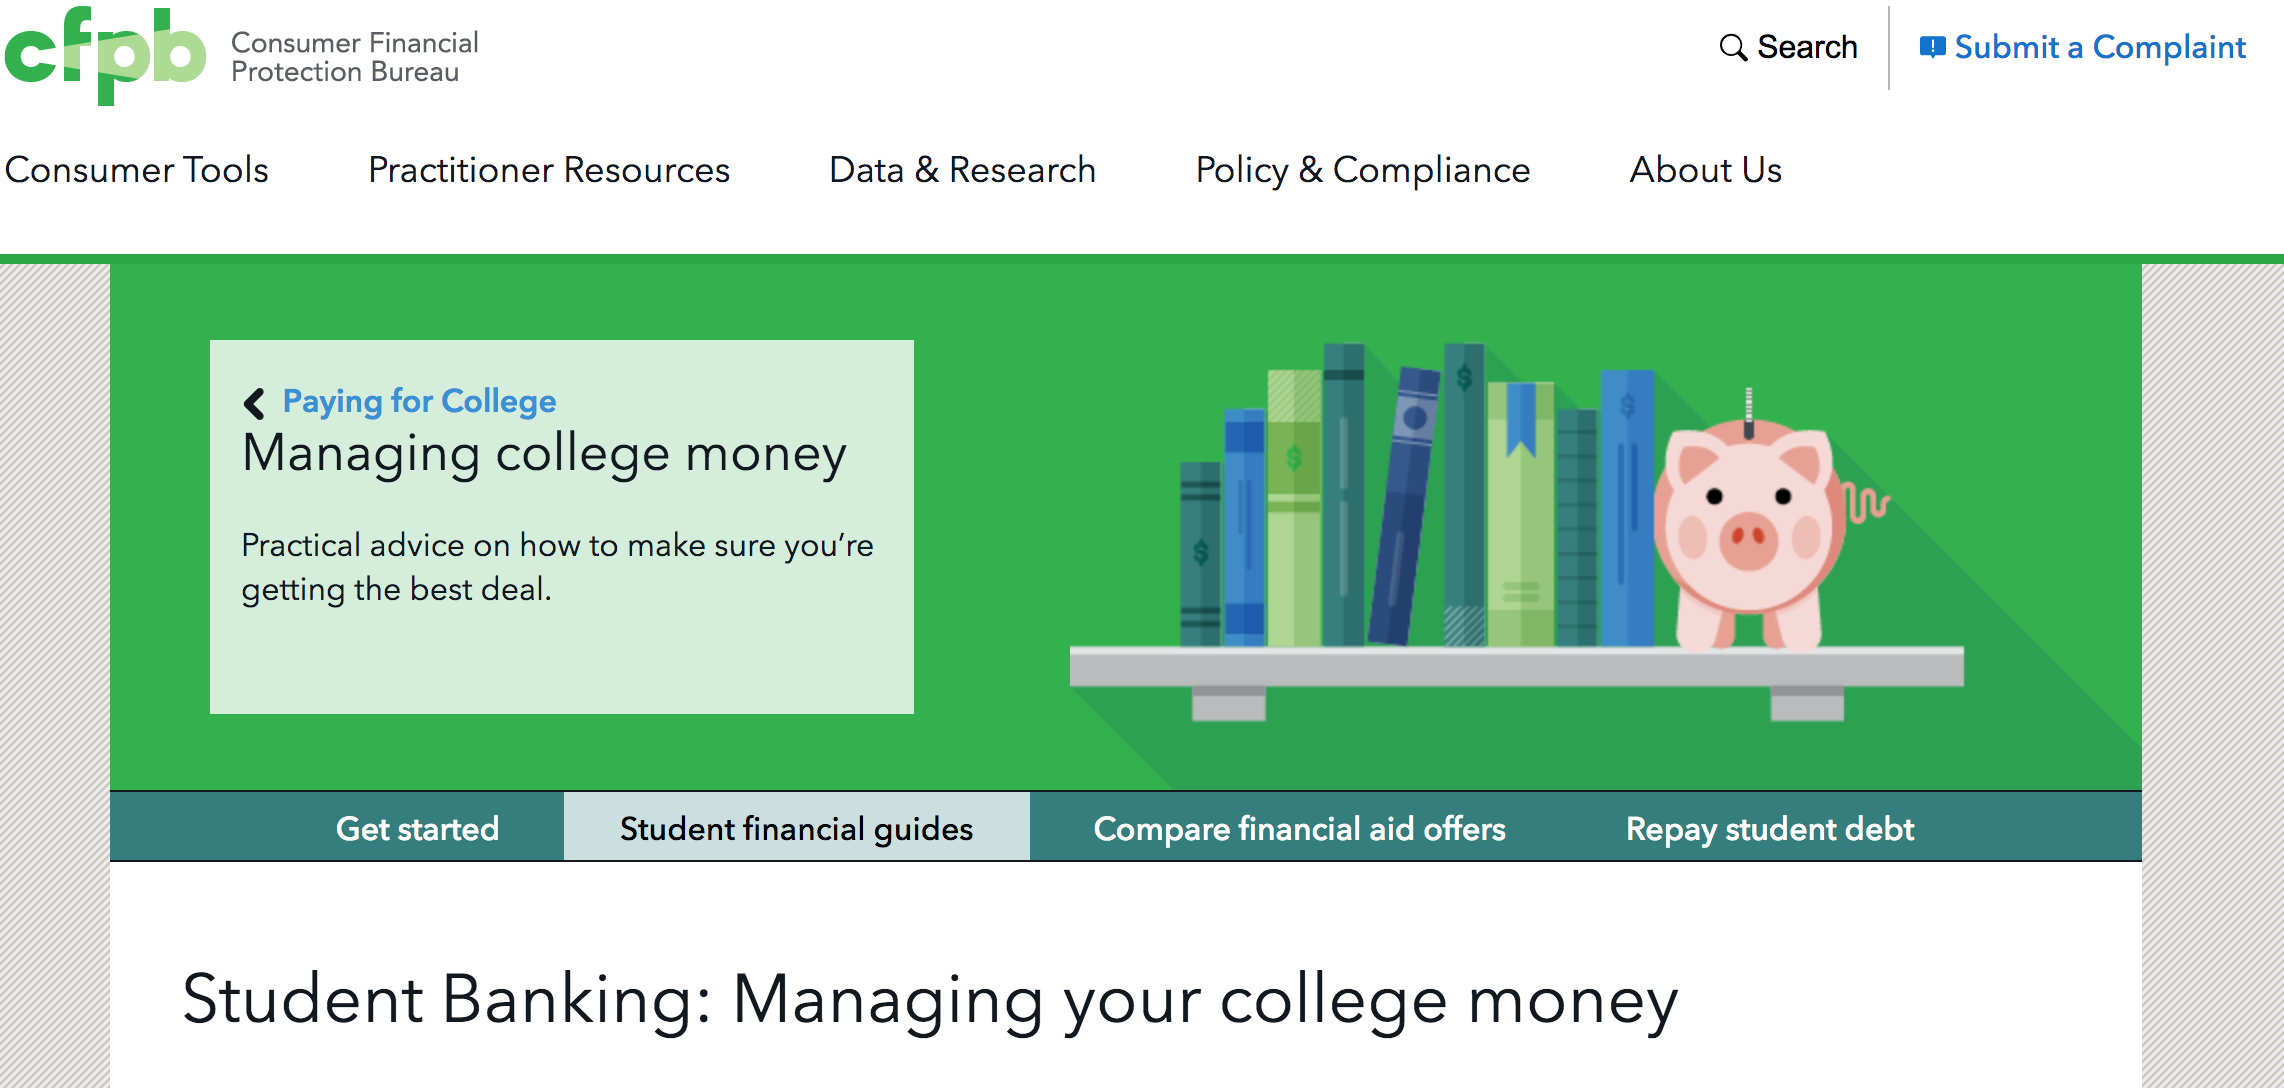 Provides Basic Tools And Advice Geared Towards Students